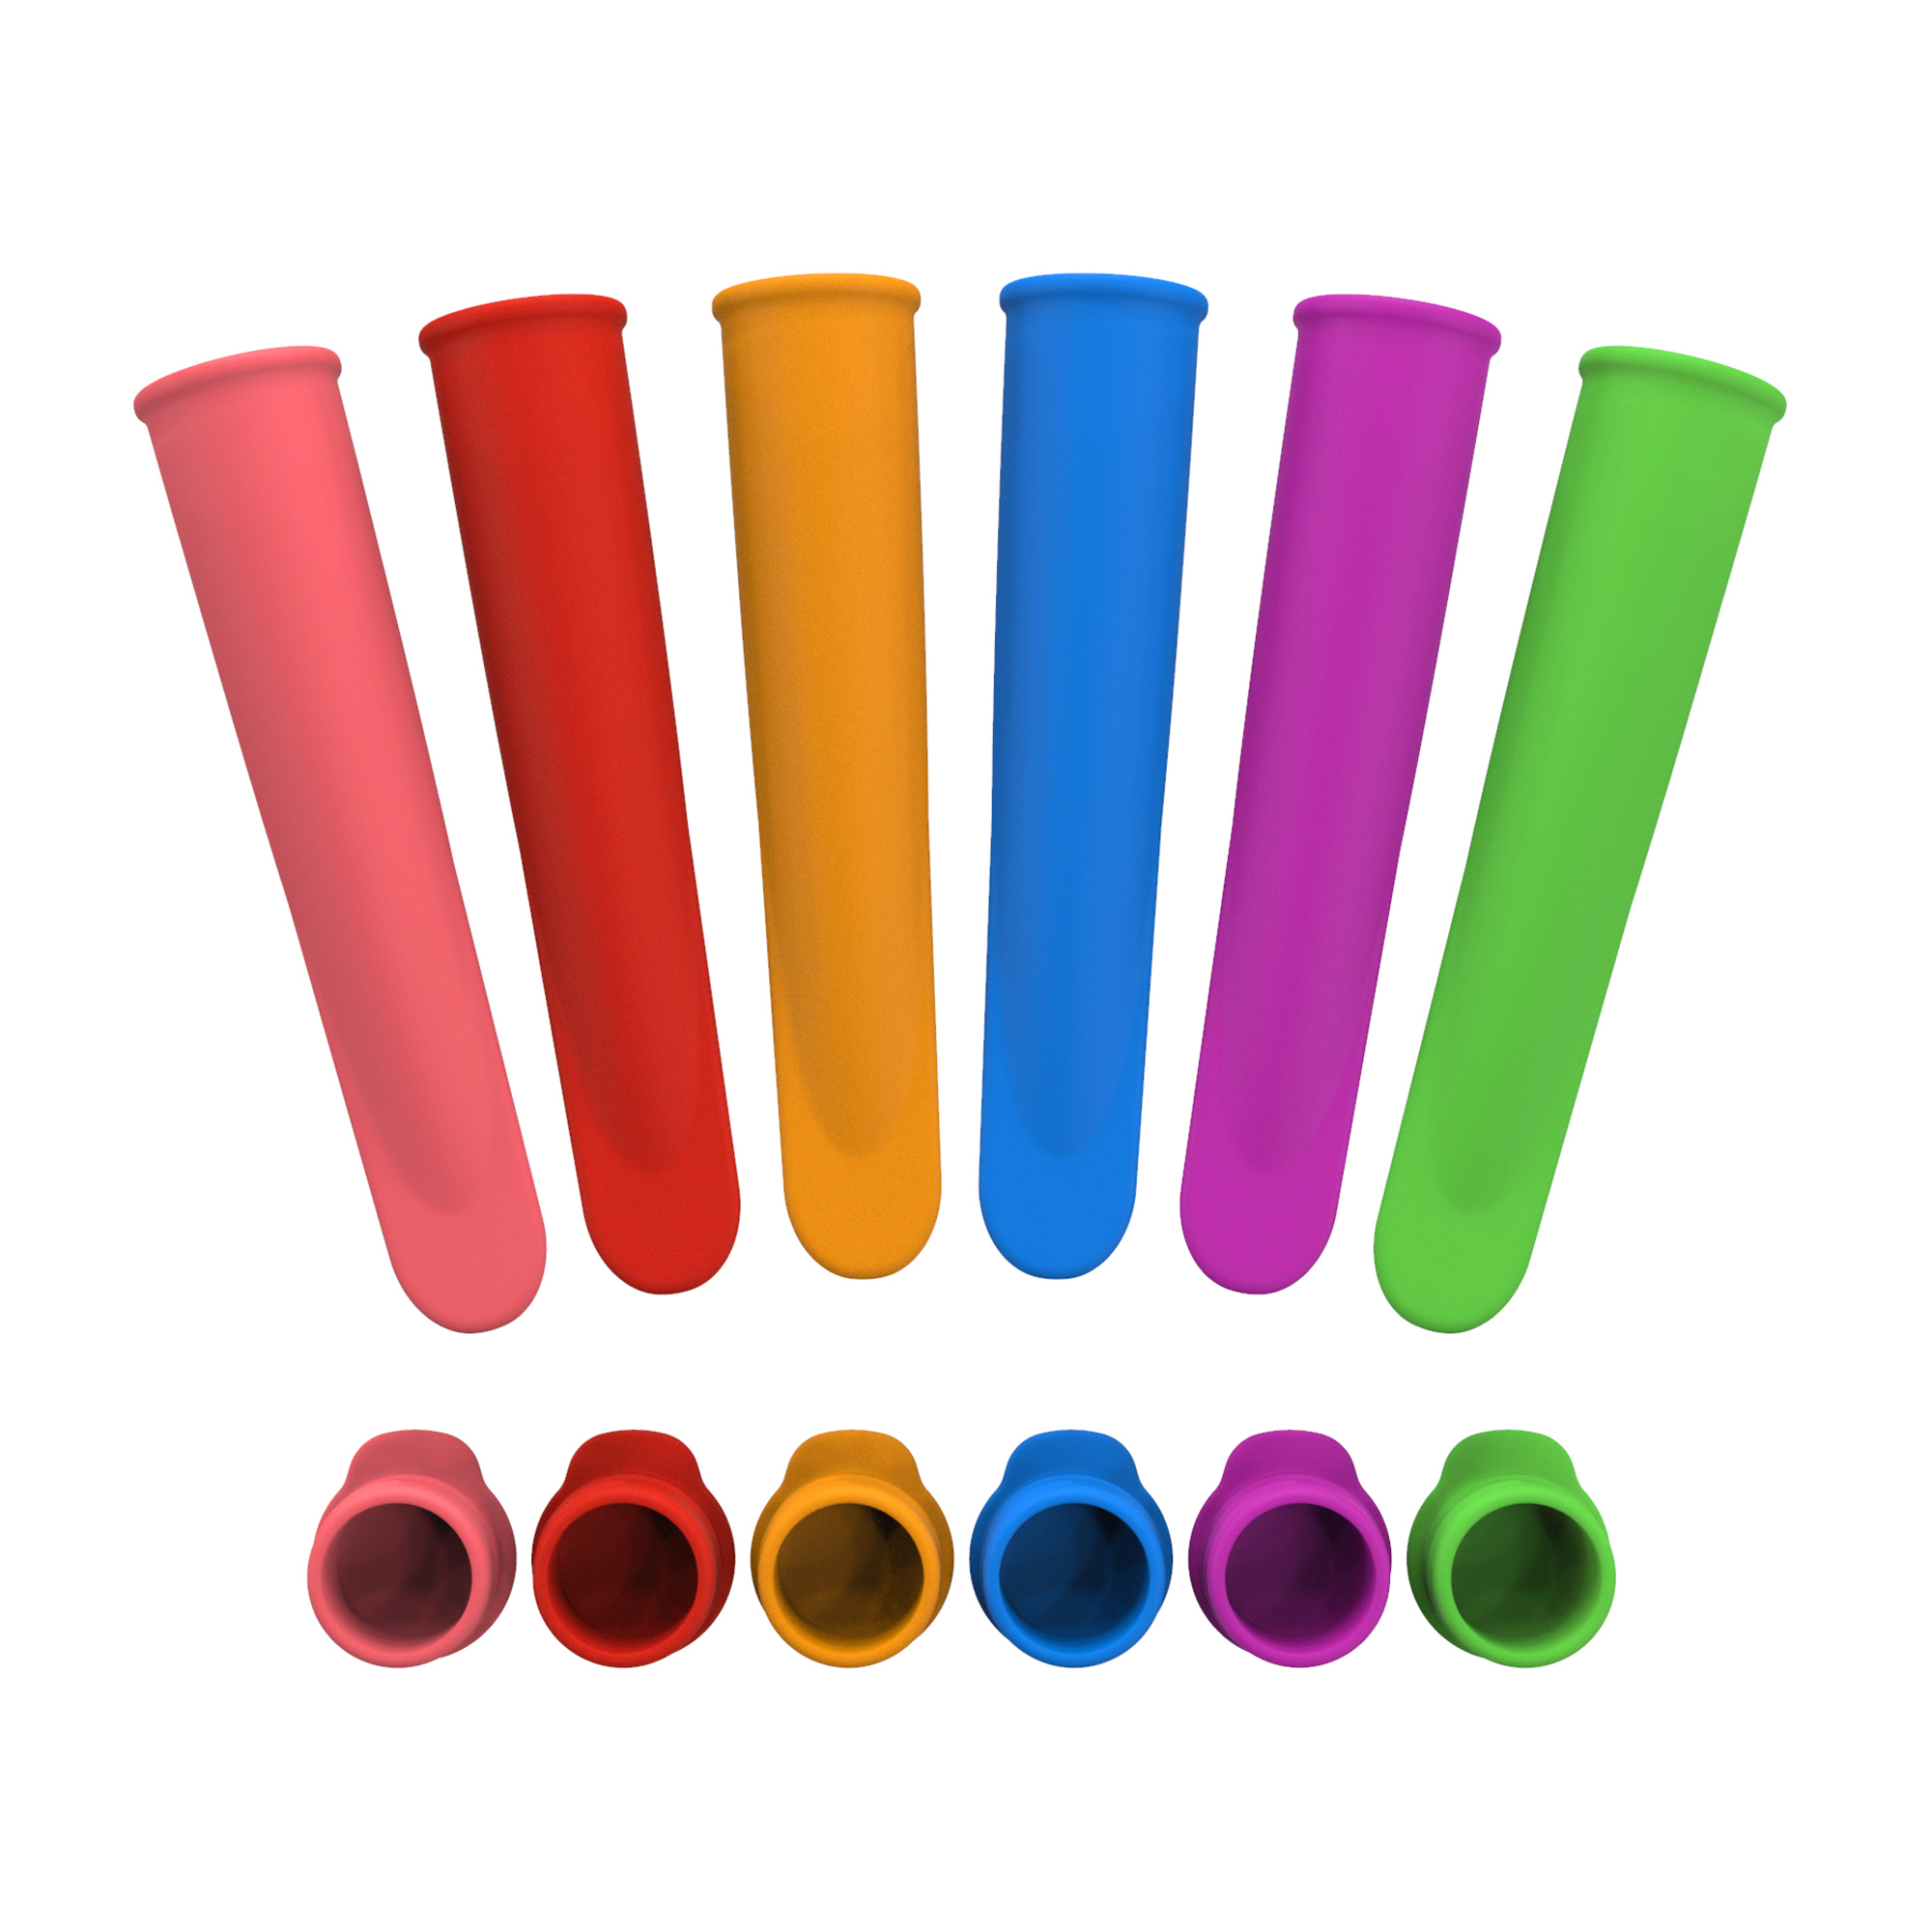 Silicone Ice Pop Mold- Colorful Frozen Dessert Makers, Reusable Tube for Homemade Flavored Ice Treats, Rainbow (Set of 6) by Chef Buddy